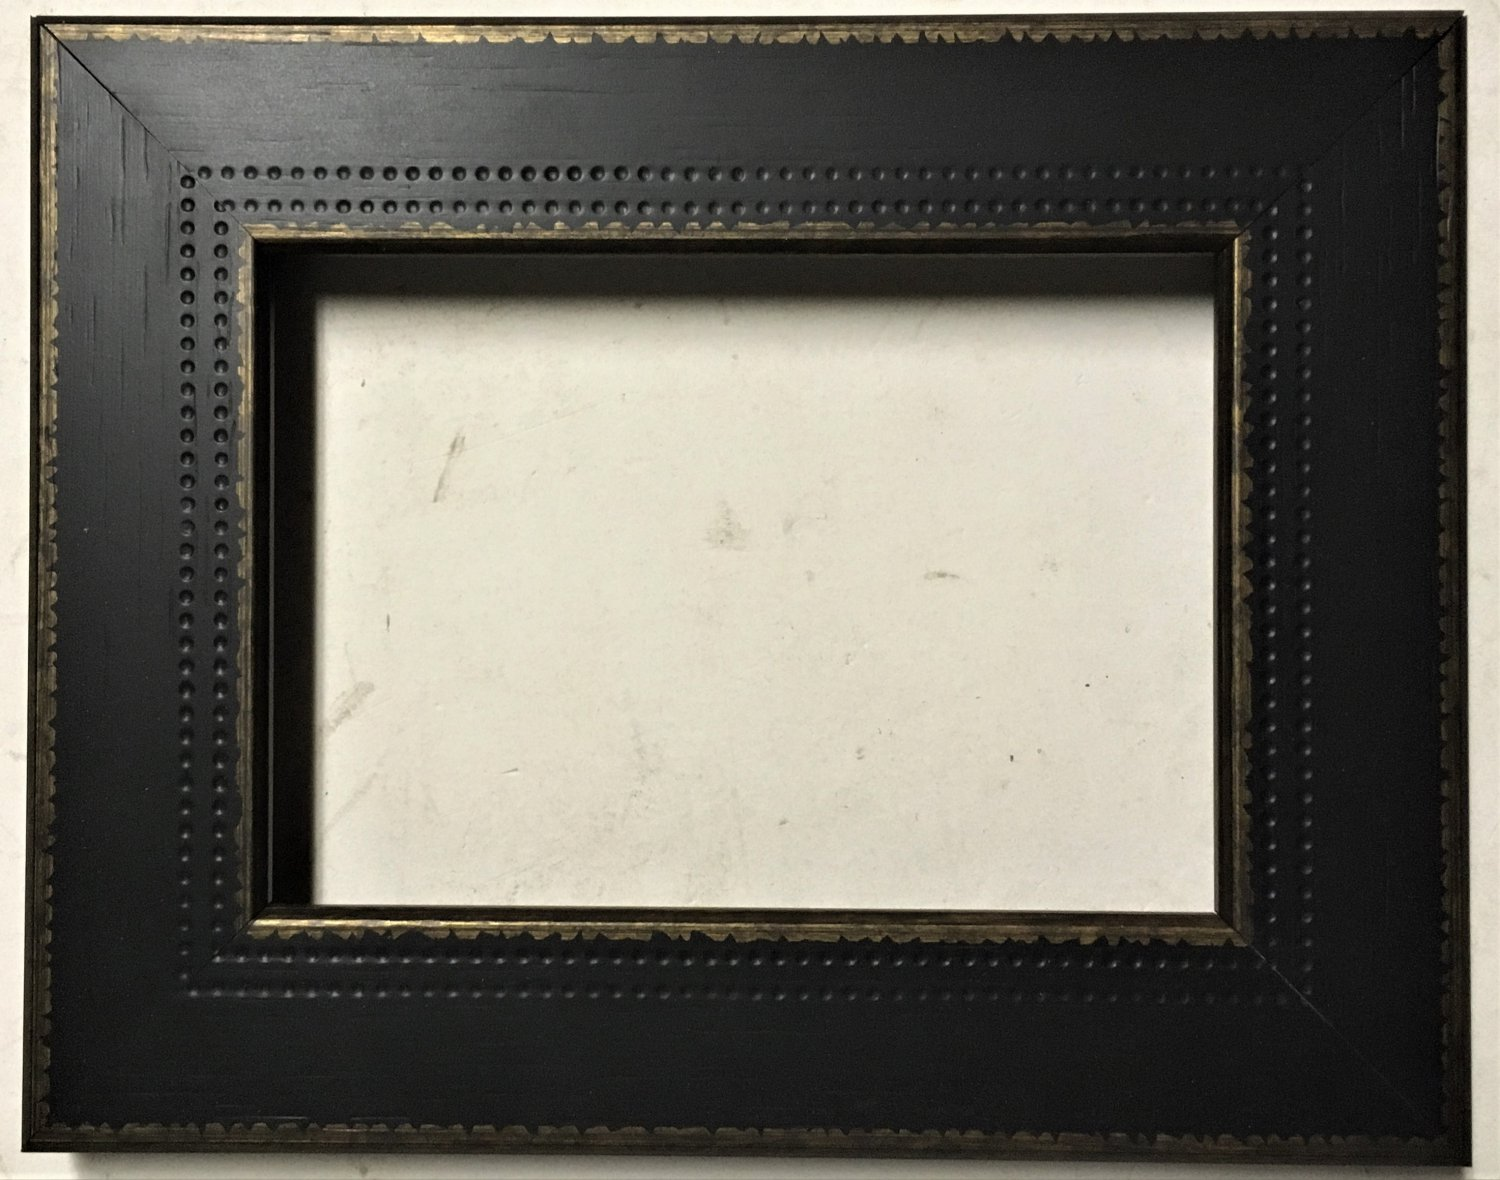 "8-1/2 x 11 1-3/4"" Black w/Gold Picture Frame"